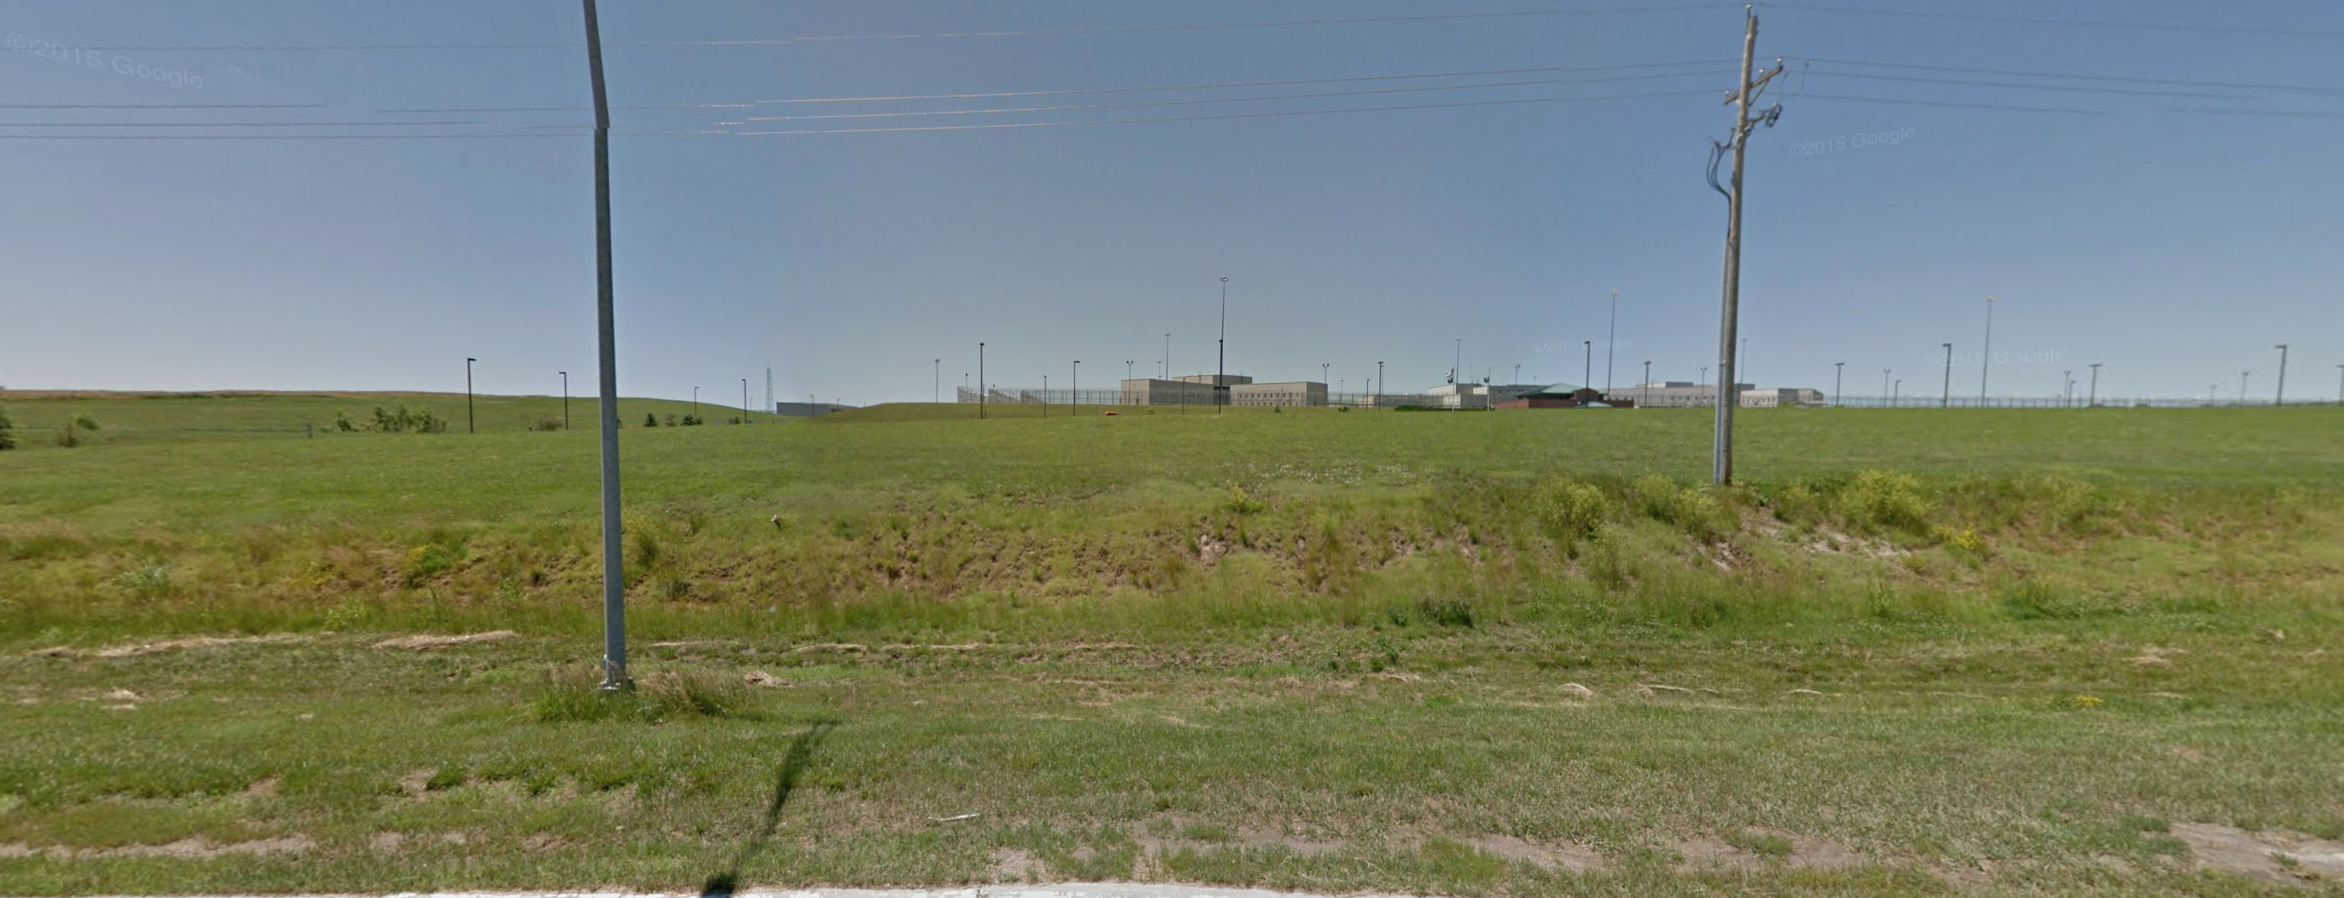 Tecumseh State Correctional Institution, where Death Row inmates are held